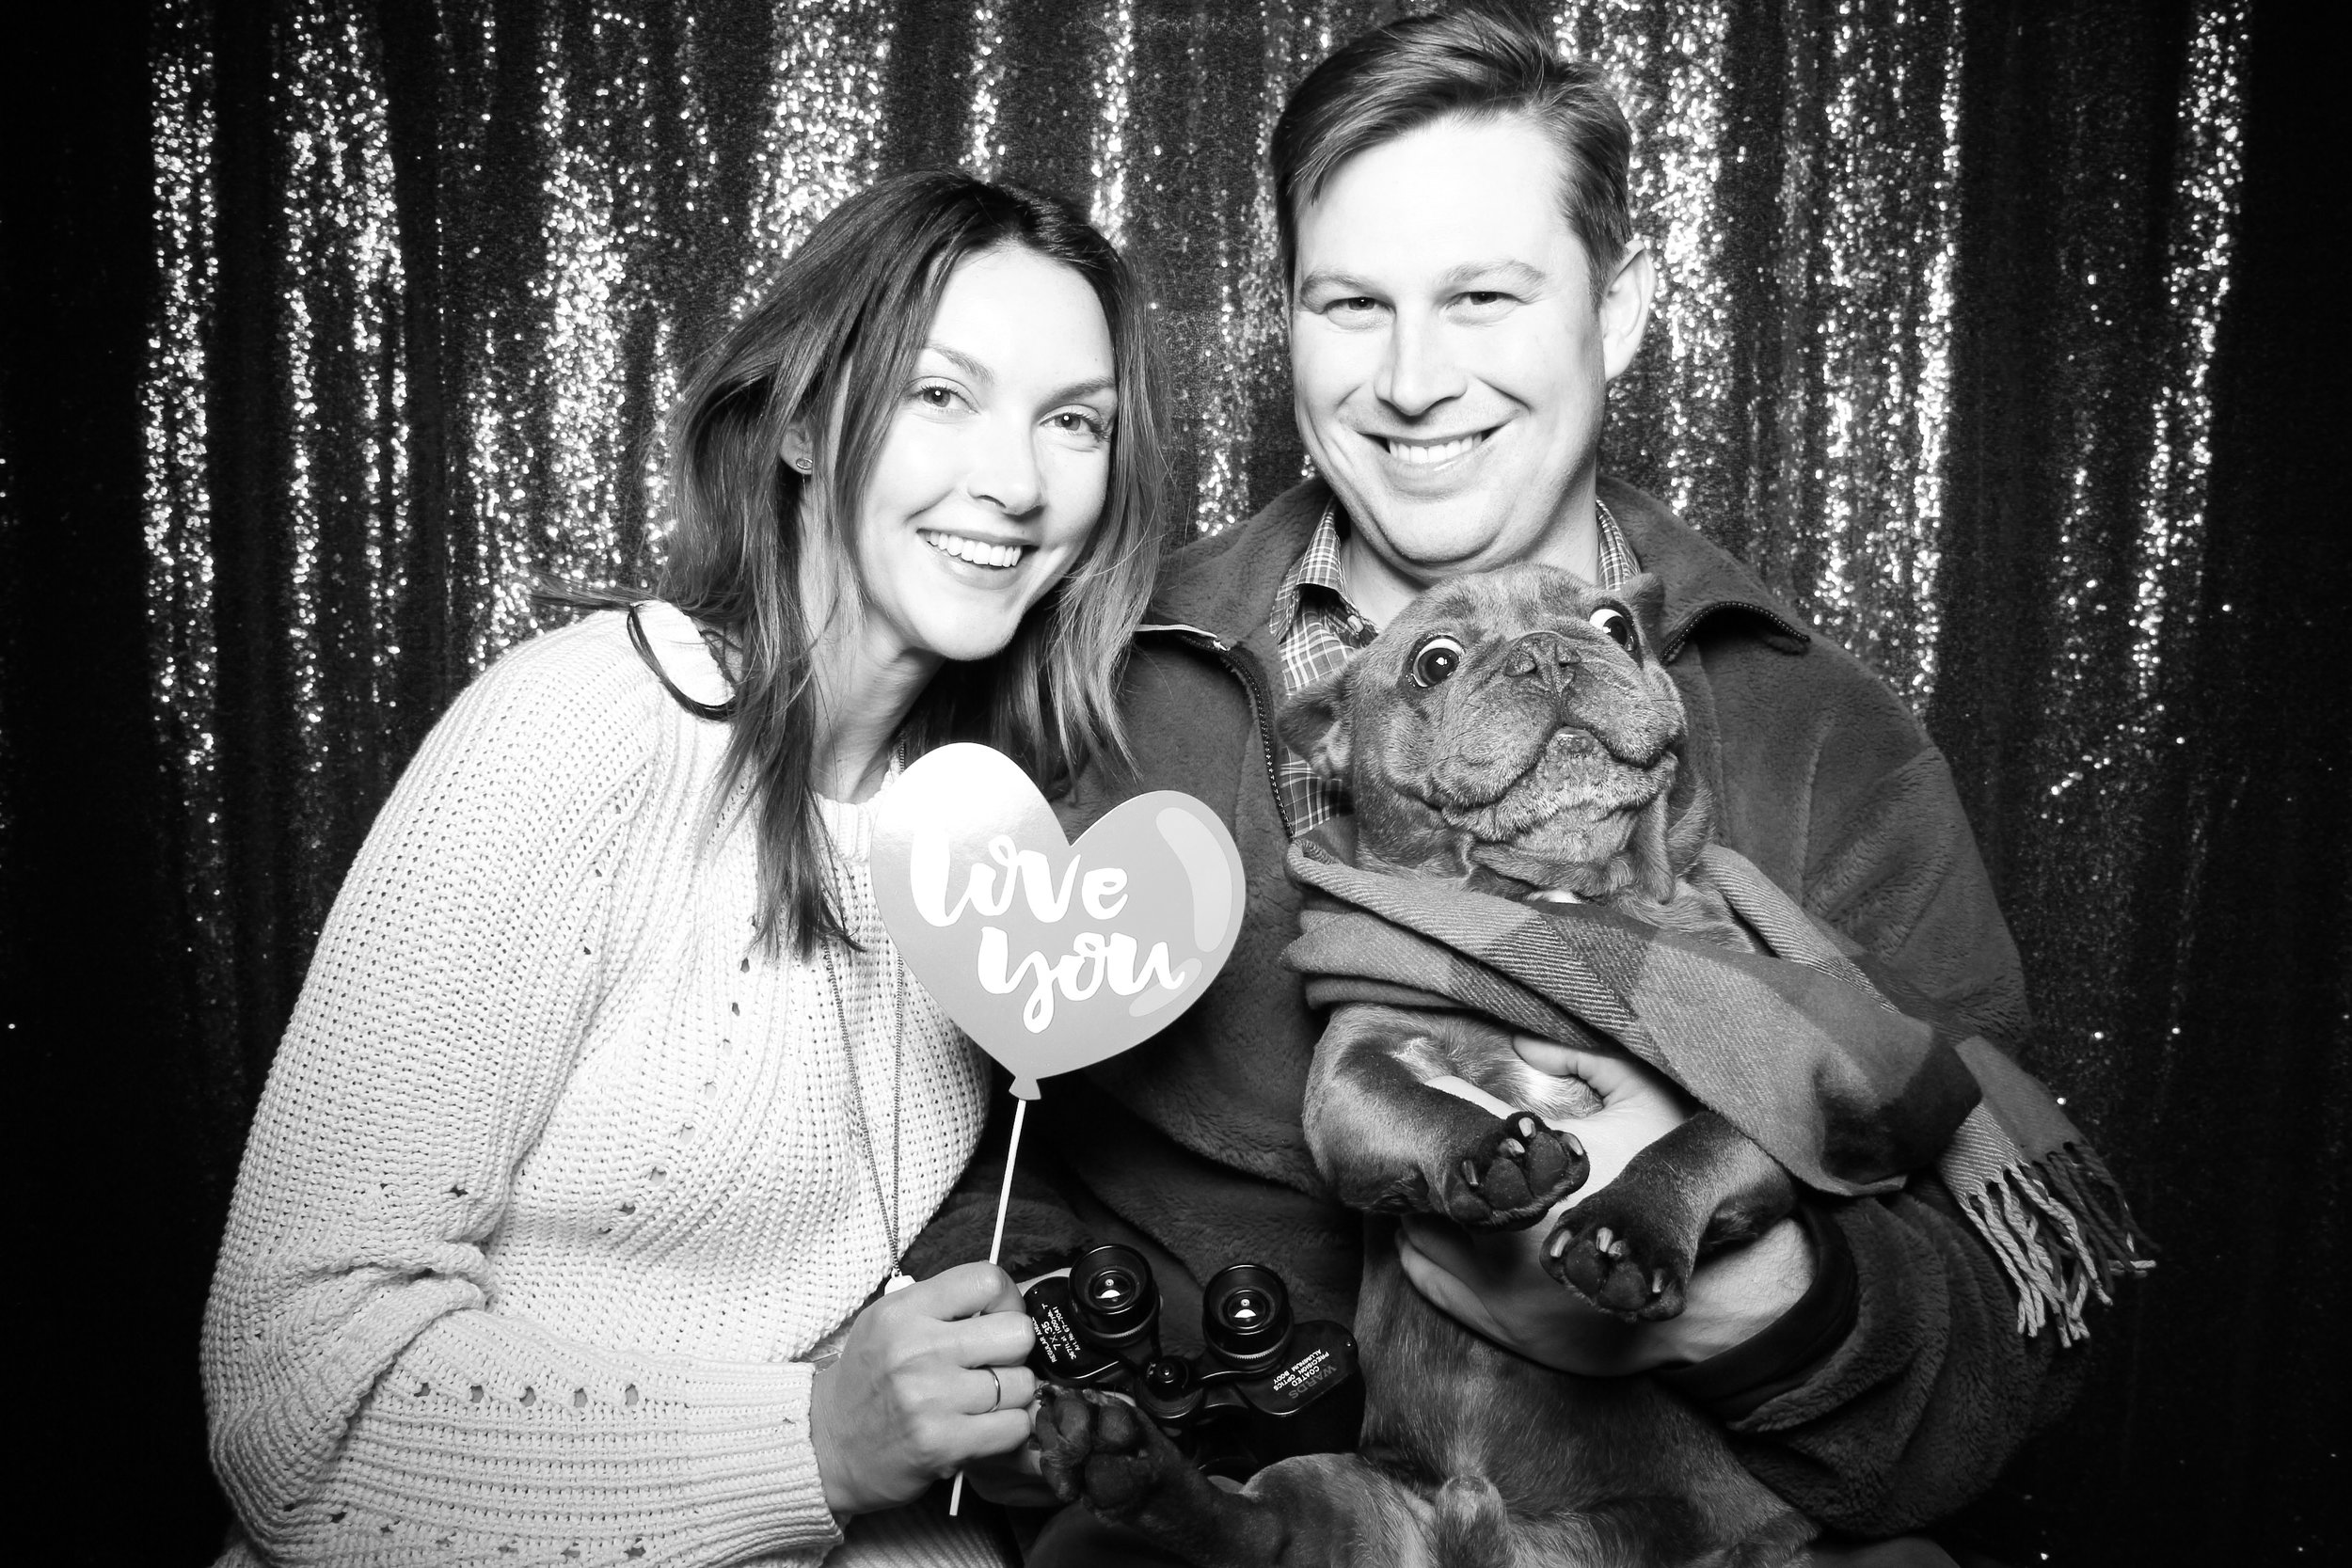 Chicago_Vintage_Photobooth_Valentines_Day_Dog_08.jpg